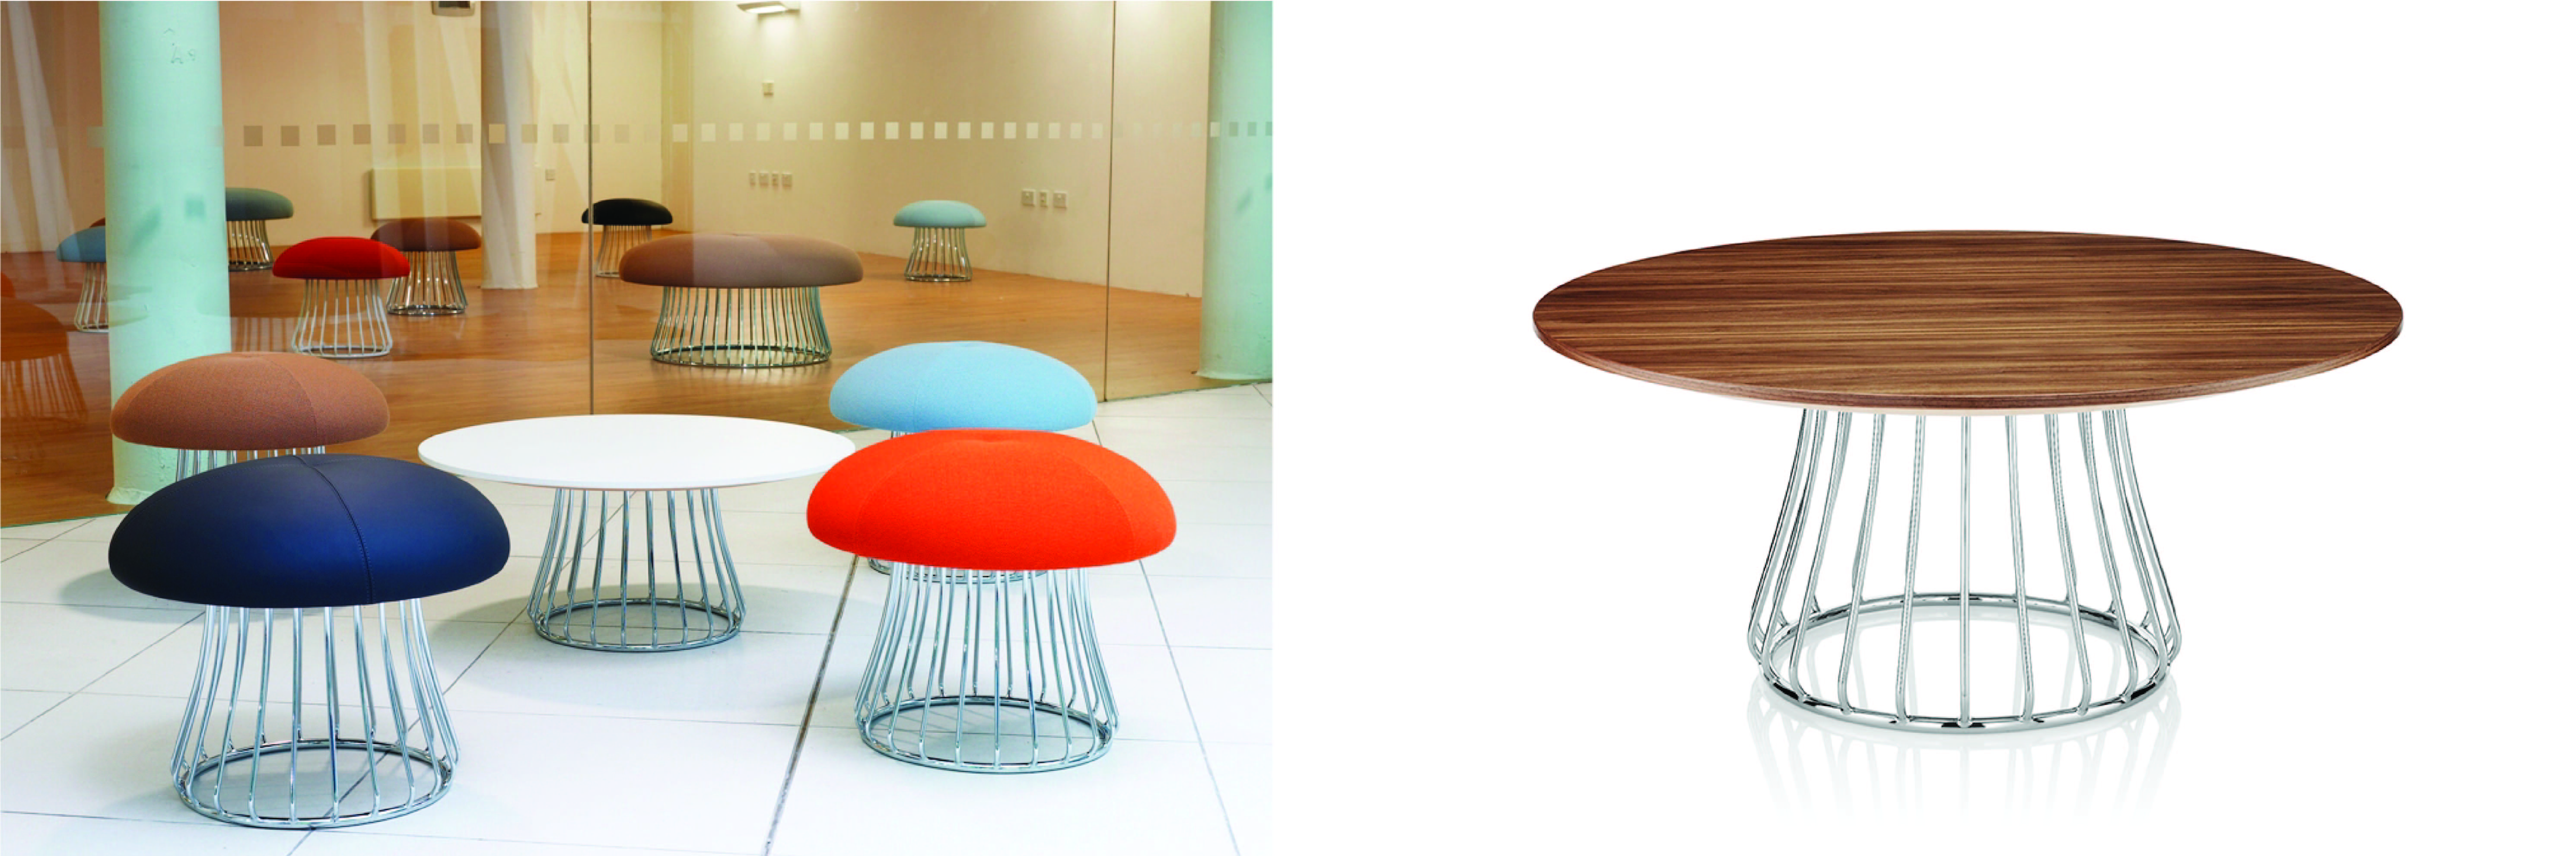 Ancillary Furniture - Magic Stool by Boss Design